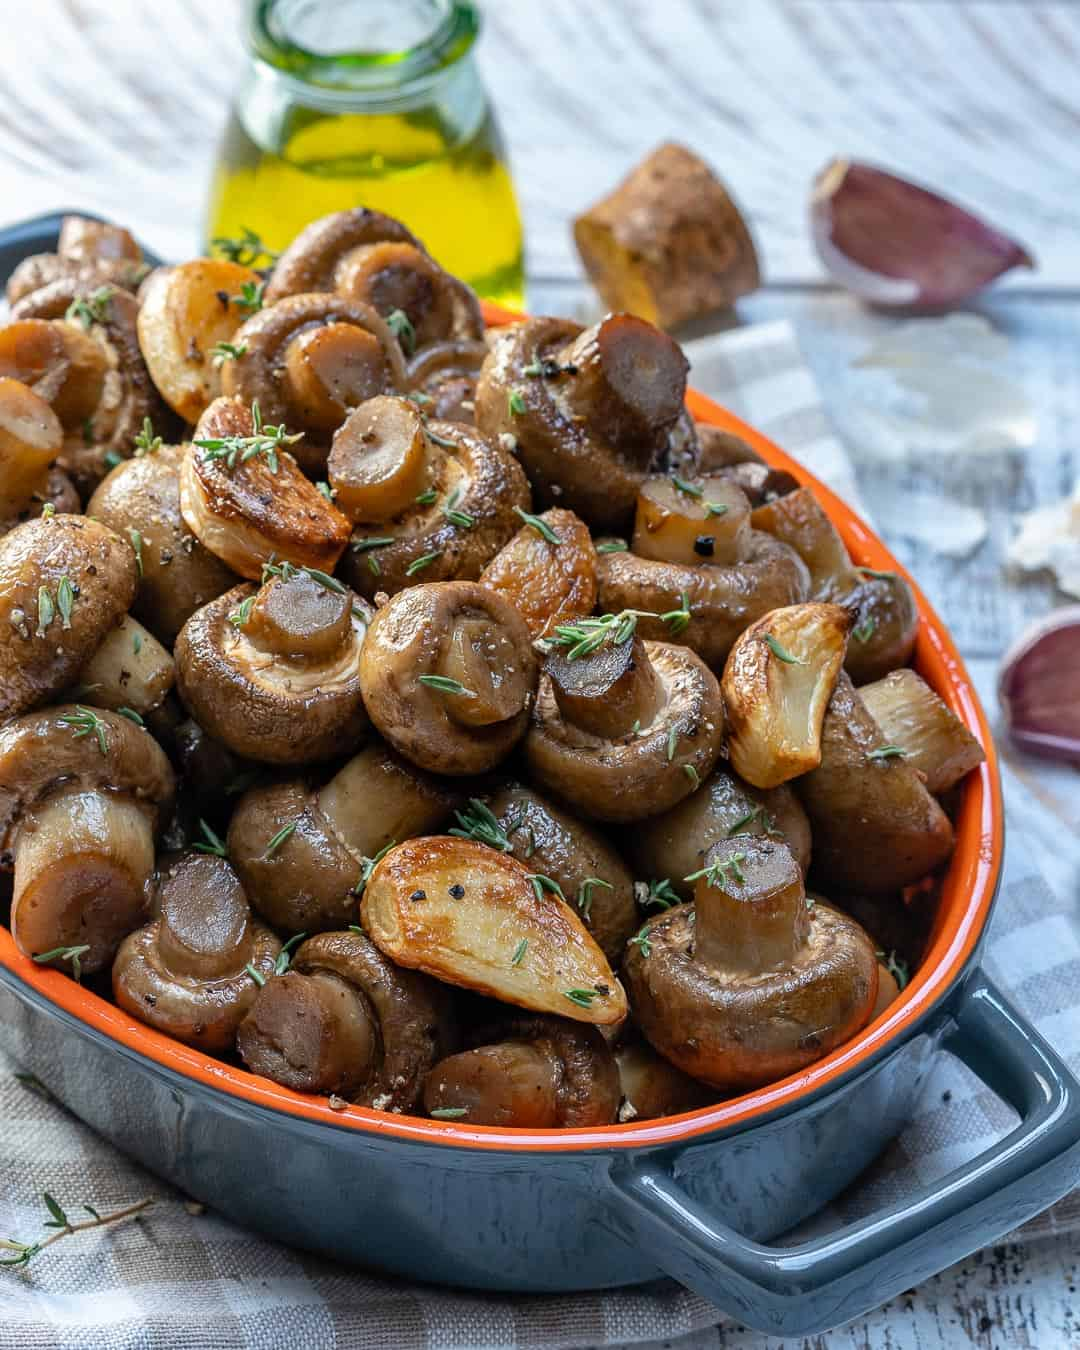 Garlic Roasted Mushrooms